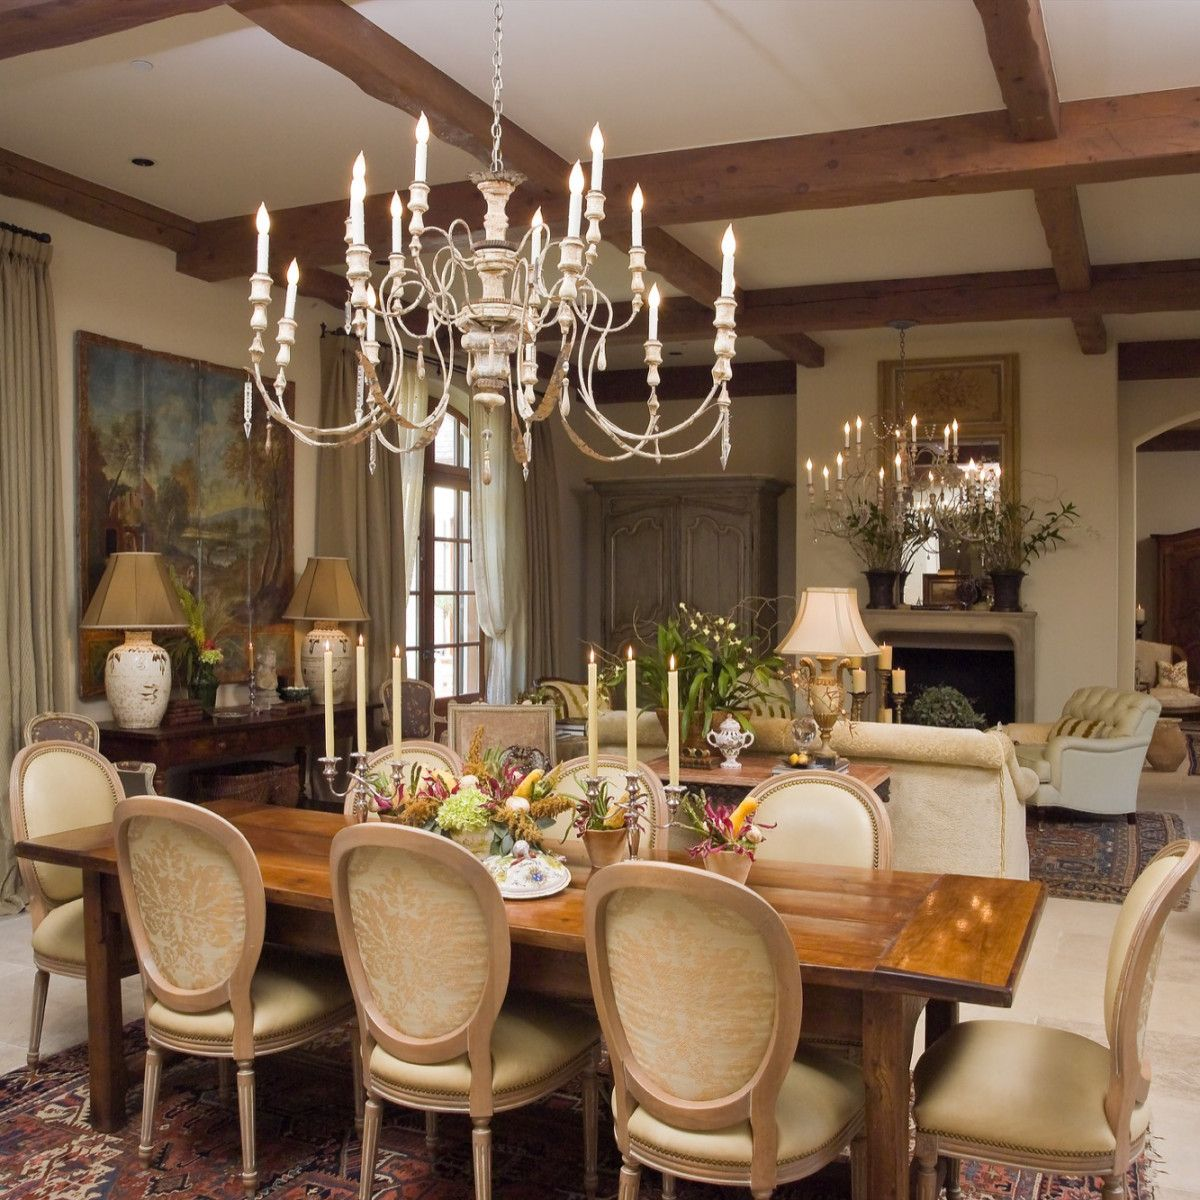 Lifestyle House Dining Room Combo Dining Room Design Rustic Dining Room